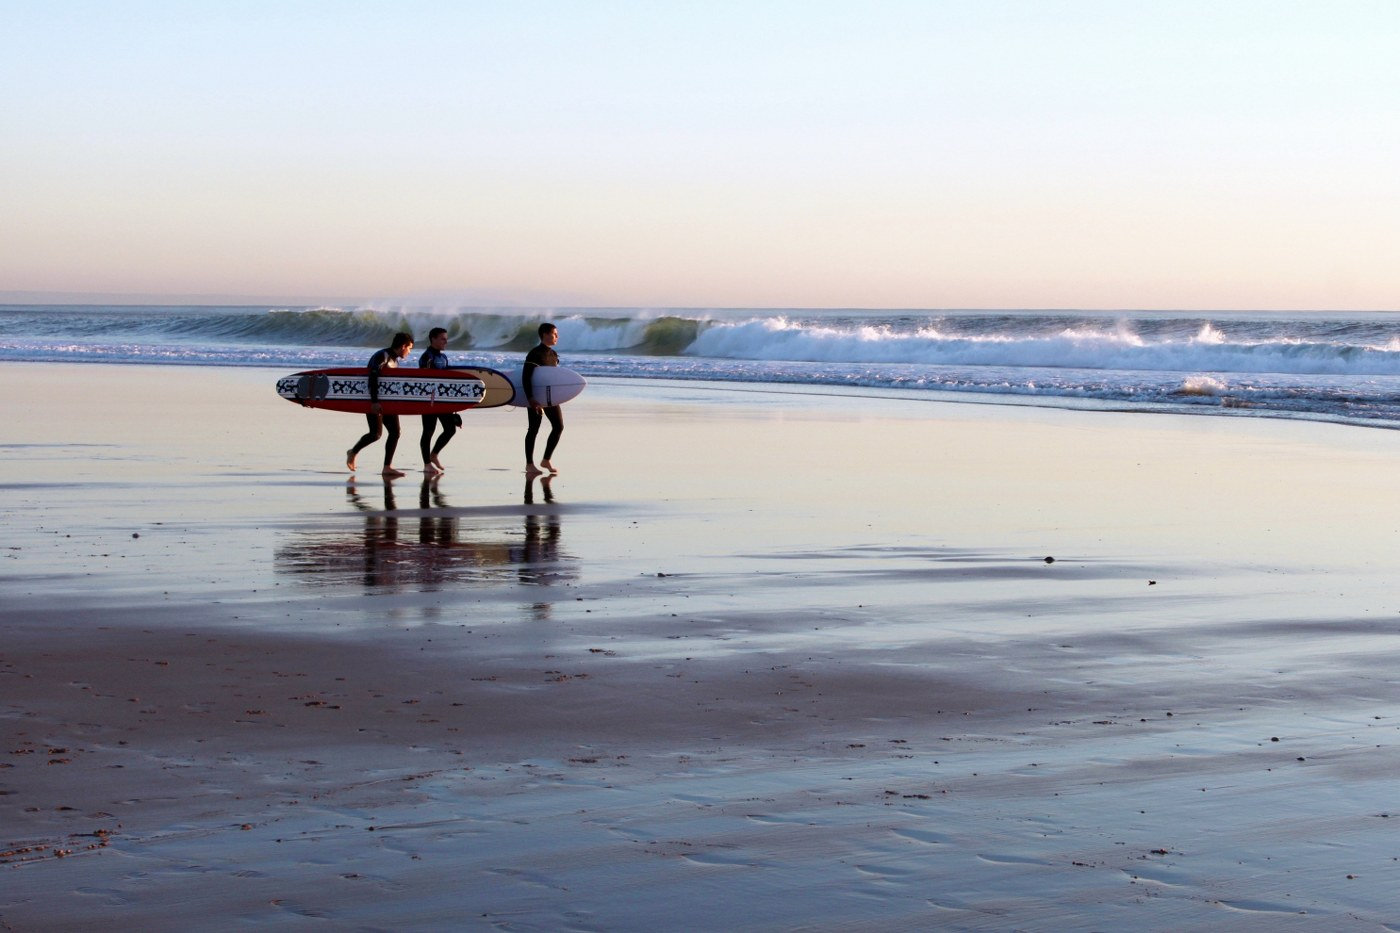 single parent holidays with teenagers - young surfers carrying board